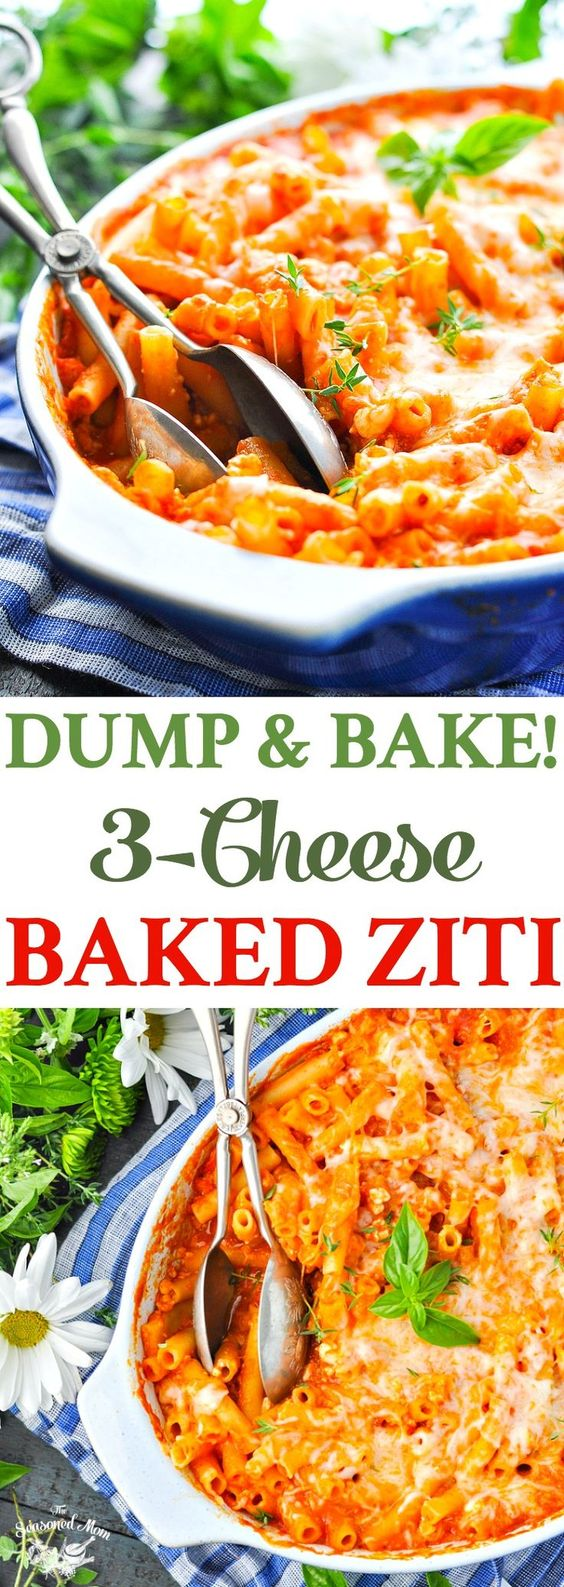 DUMP-AND-BAKE 3-CHEESE BAKED ZITI #cheese #ziti #zitirecipes #dinner #dinnerideas #dinnerrecipes #easydinnerrecipes